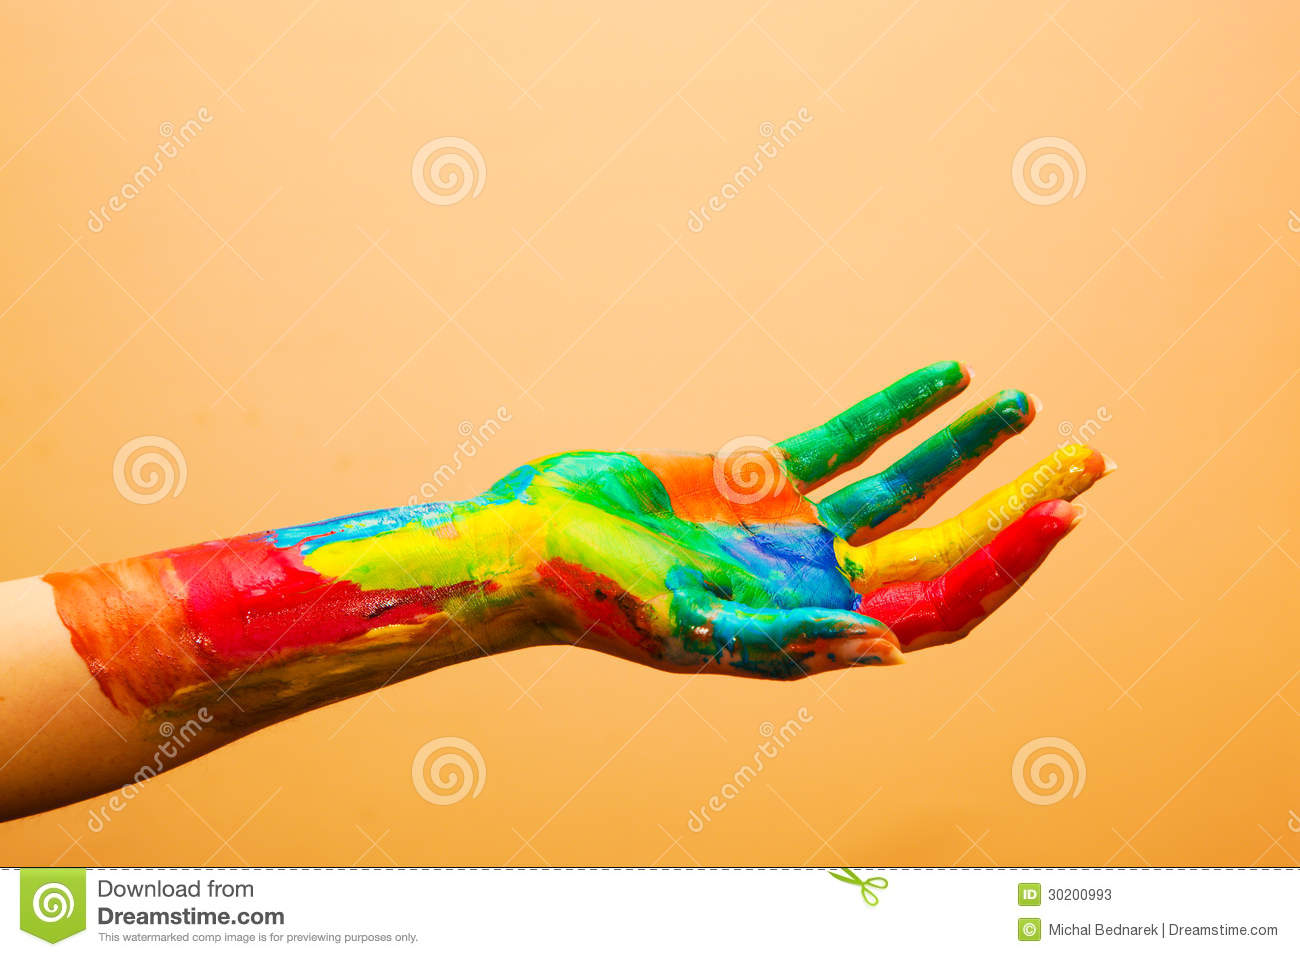 Painted hand, colorful fun. Orange background